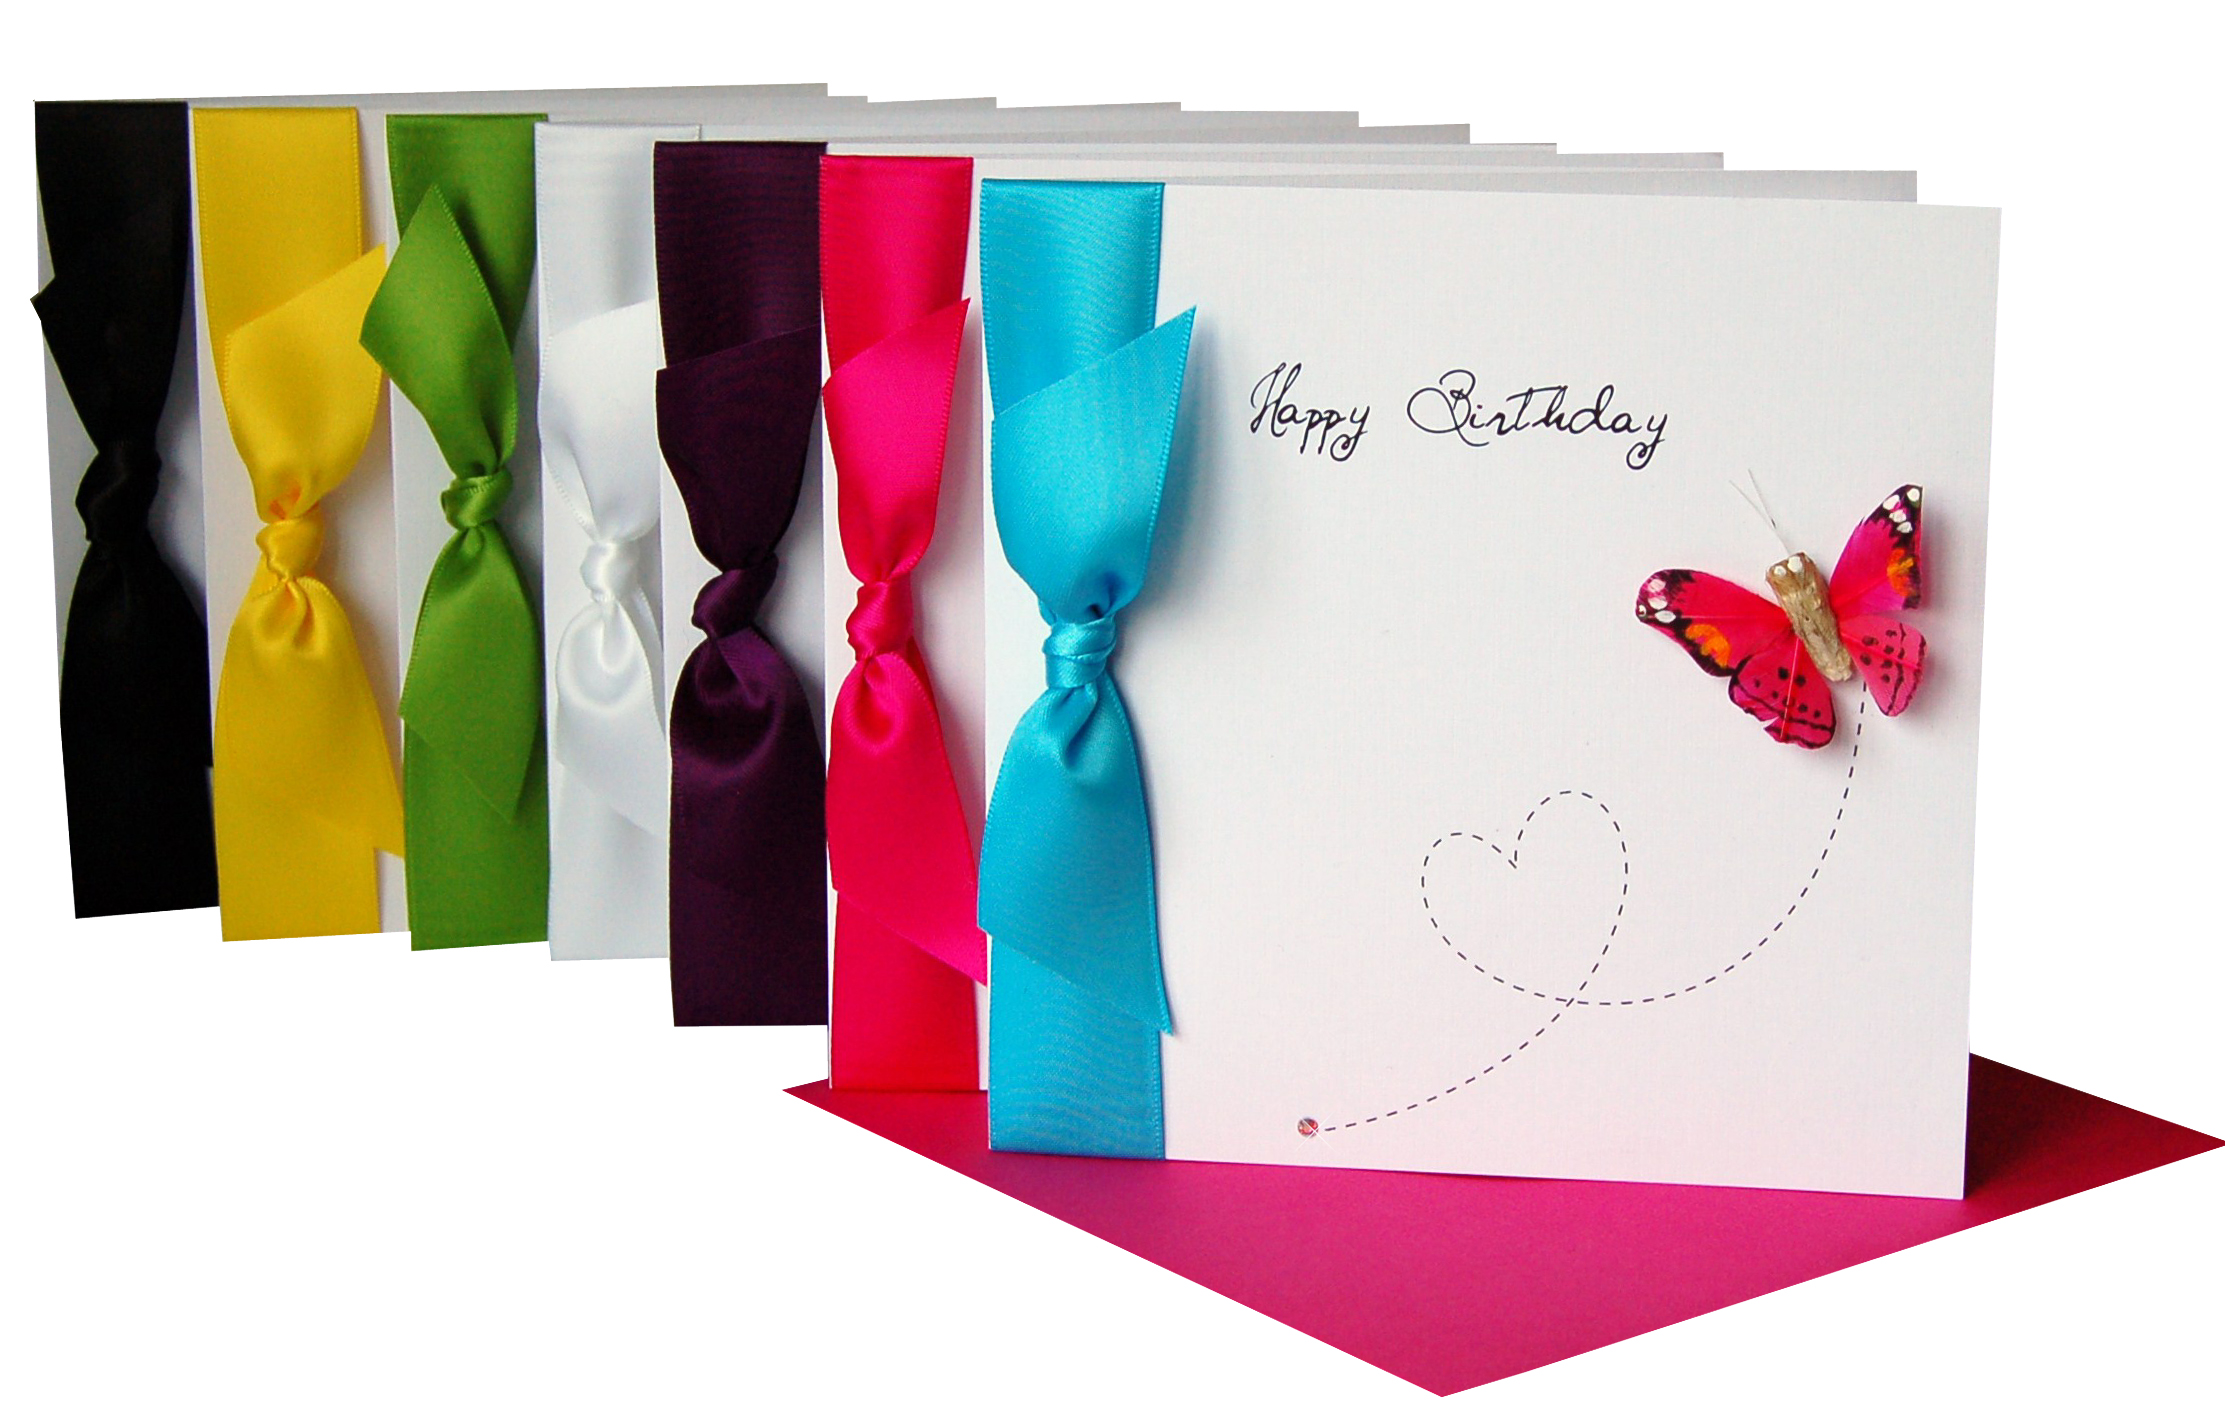 Flutterby fancies birthday cards new design made with love designs perfect m4hsunfo